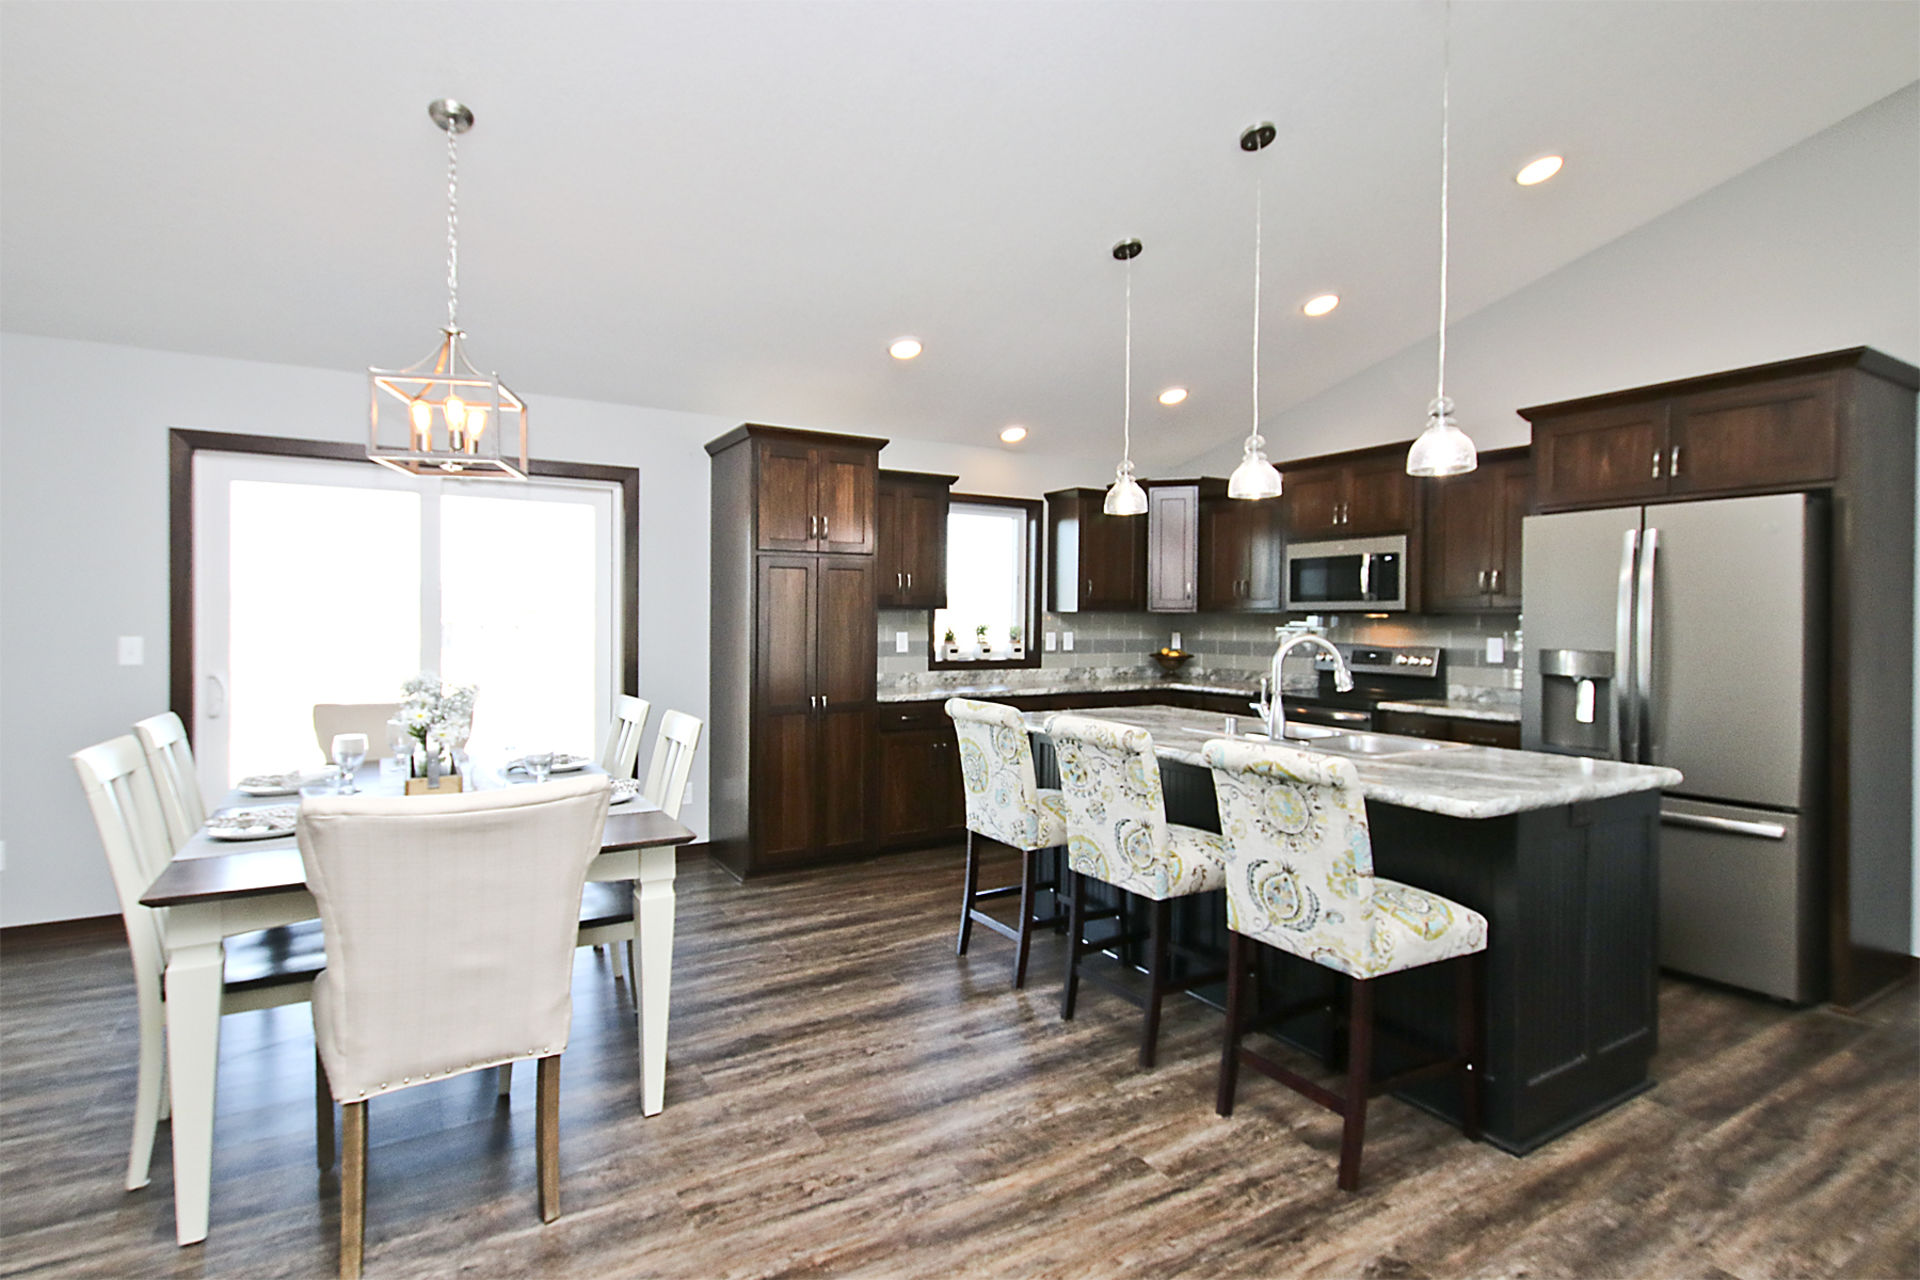 Top 10 Important Home Staging Tips